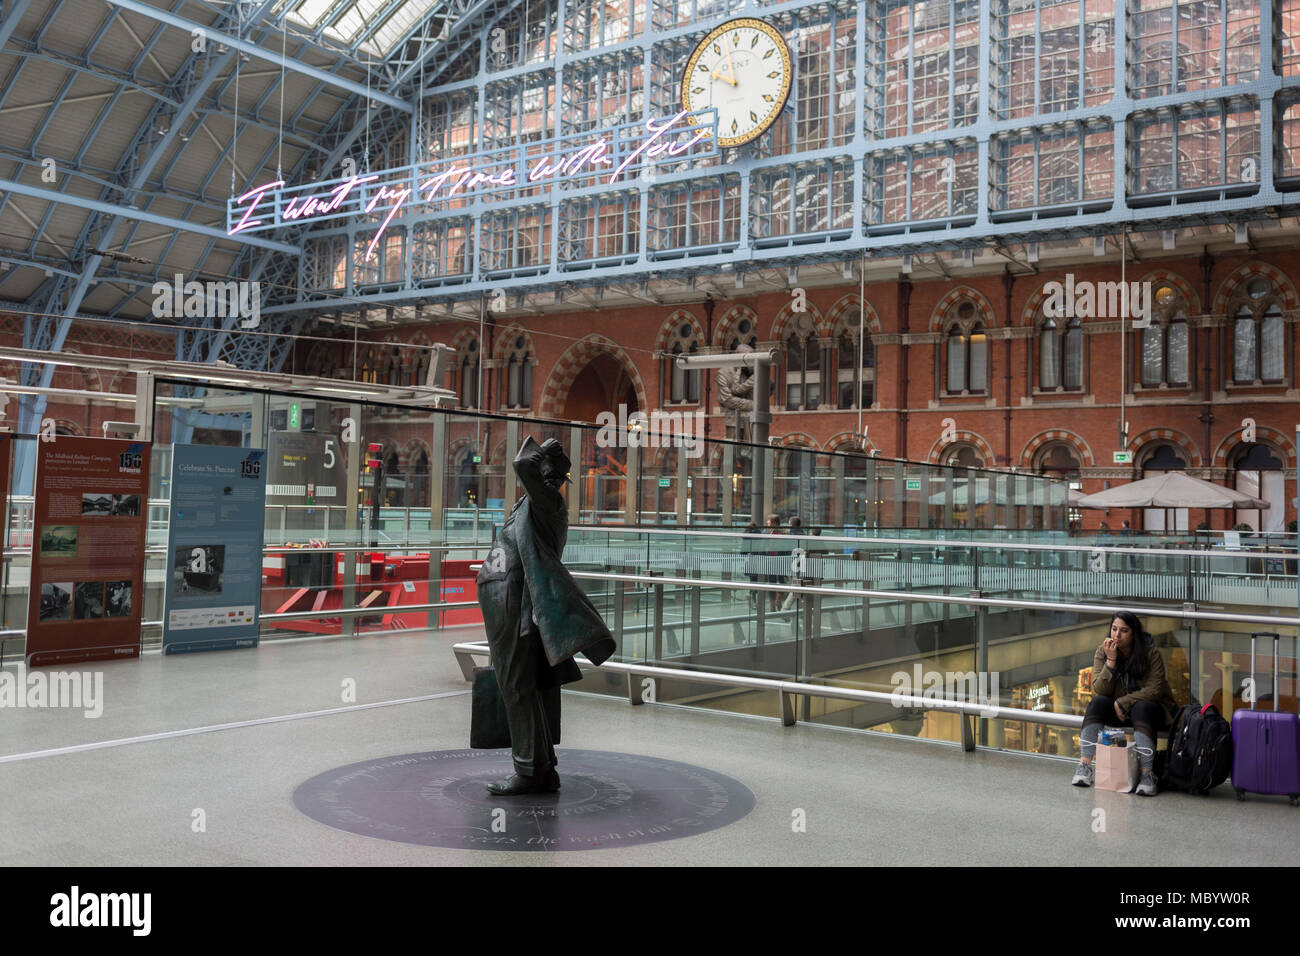 The statue of poet John Betjeman by Martin Jennings looks up to the new artwork entitled 'I Want My Time With You' by British (Britpop) artist Tracy Emin which hangs over the main concourse at St. Pancras Station, on 10th April 2018, in London, England. In the sixth year of the Terrace Wires Commission - and in celebration of the 150th anniversary of St Pancras International and the 250th anniversary of the Royal Academy of Arts, at one of London's mainline station, the London hub for Eurostar - the 20 metre-long greeting to commuters reads 'I Want My Time With You' and Emin thinks that arrivi - Stock Image